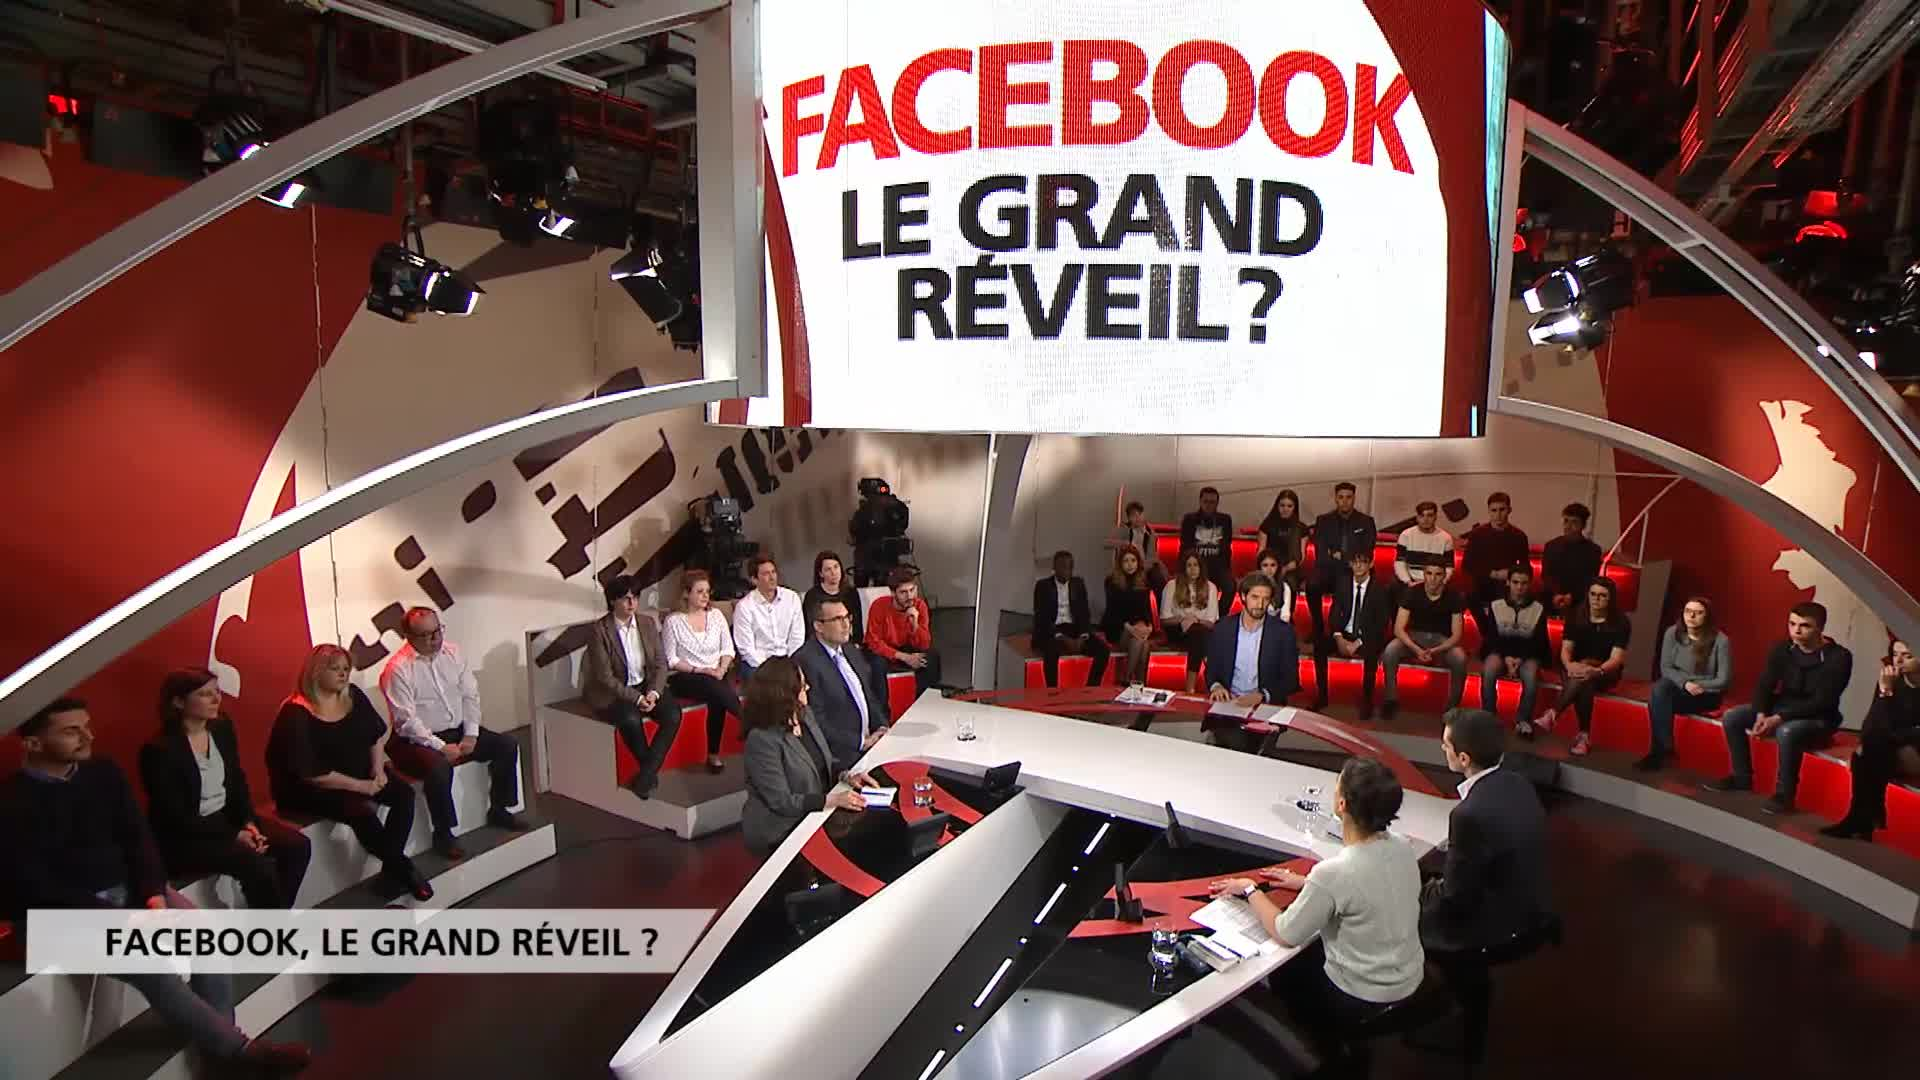 Facebook, le grand réveil ?